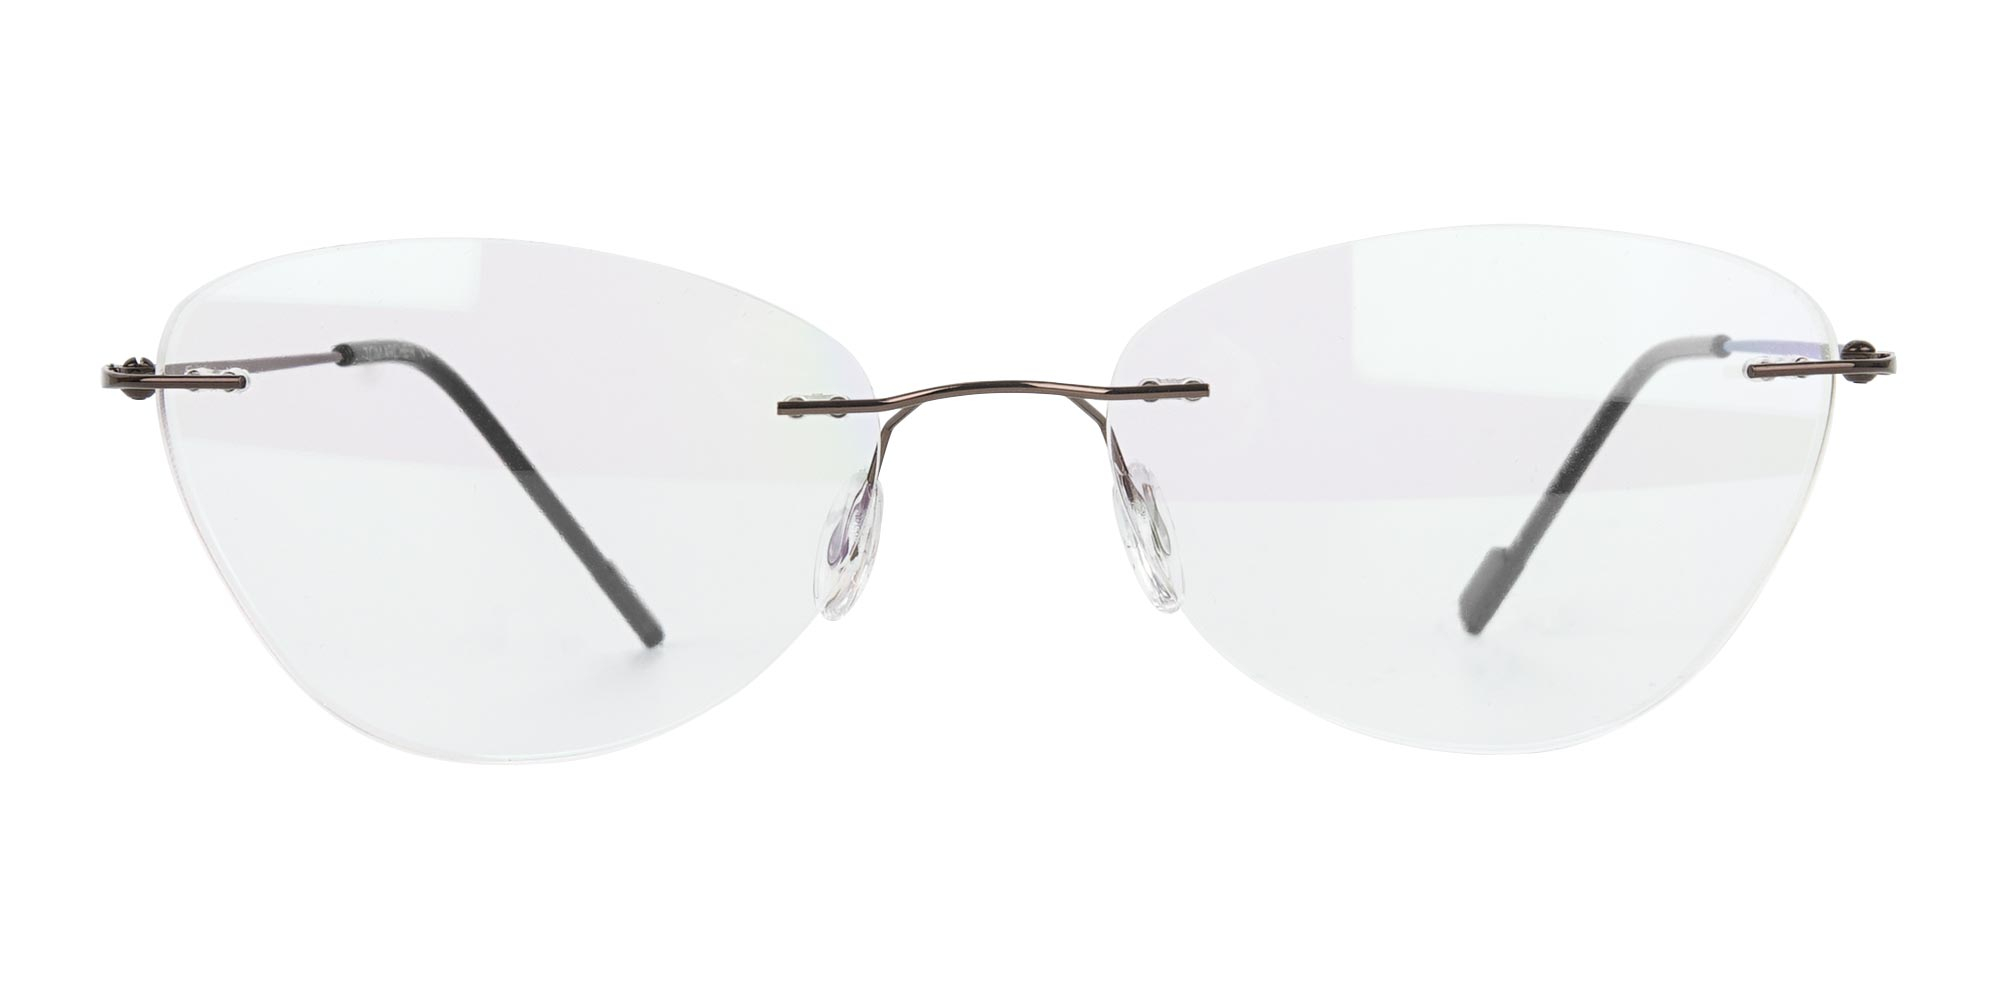 Rimless Cat-Eye Glasses in Brown Metal